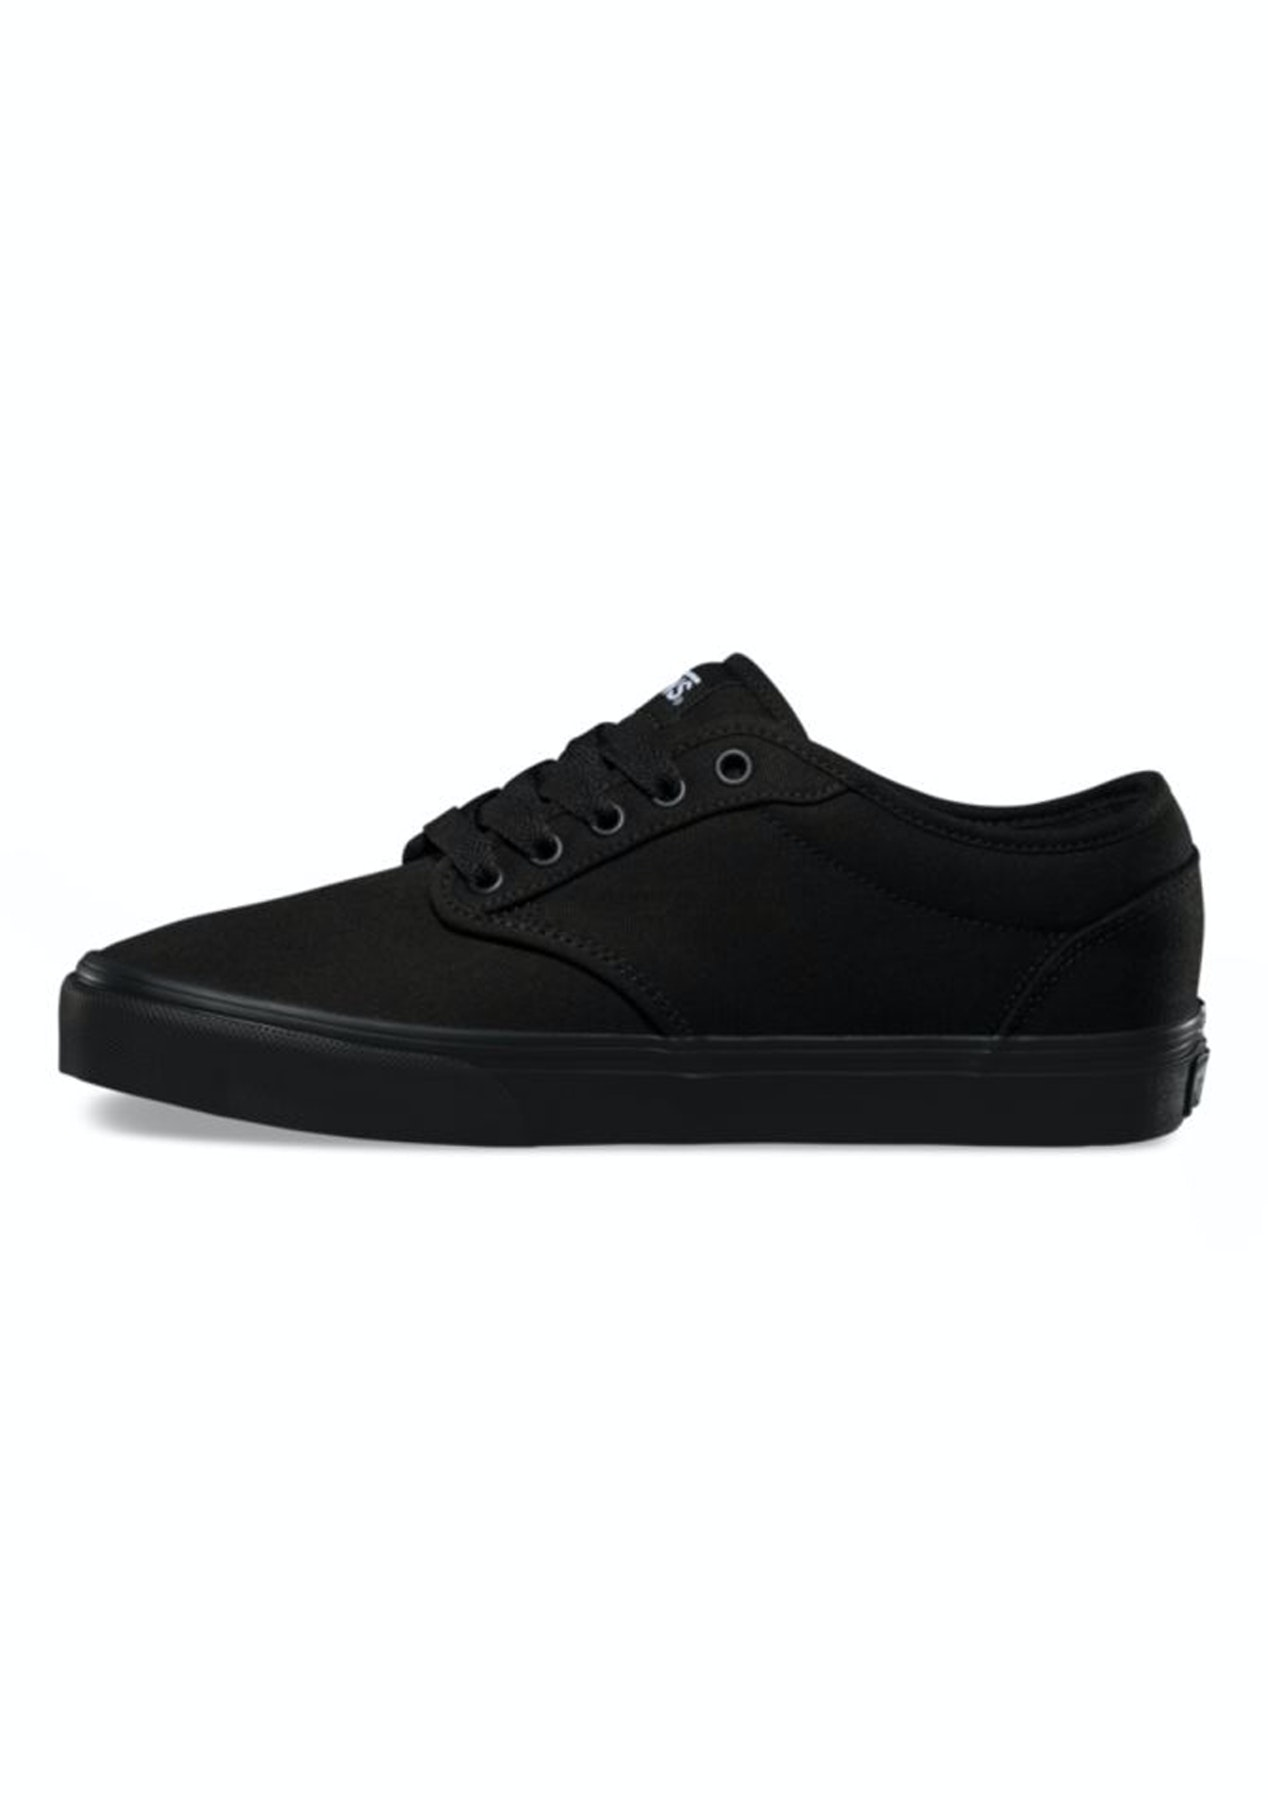 287284e290c1e1 Vans - Womens Atwood Low - Canvas - Black Black - Express Shipping Skechers  + More - Onceit